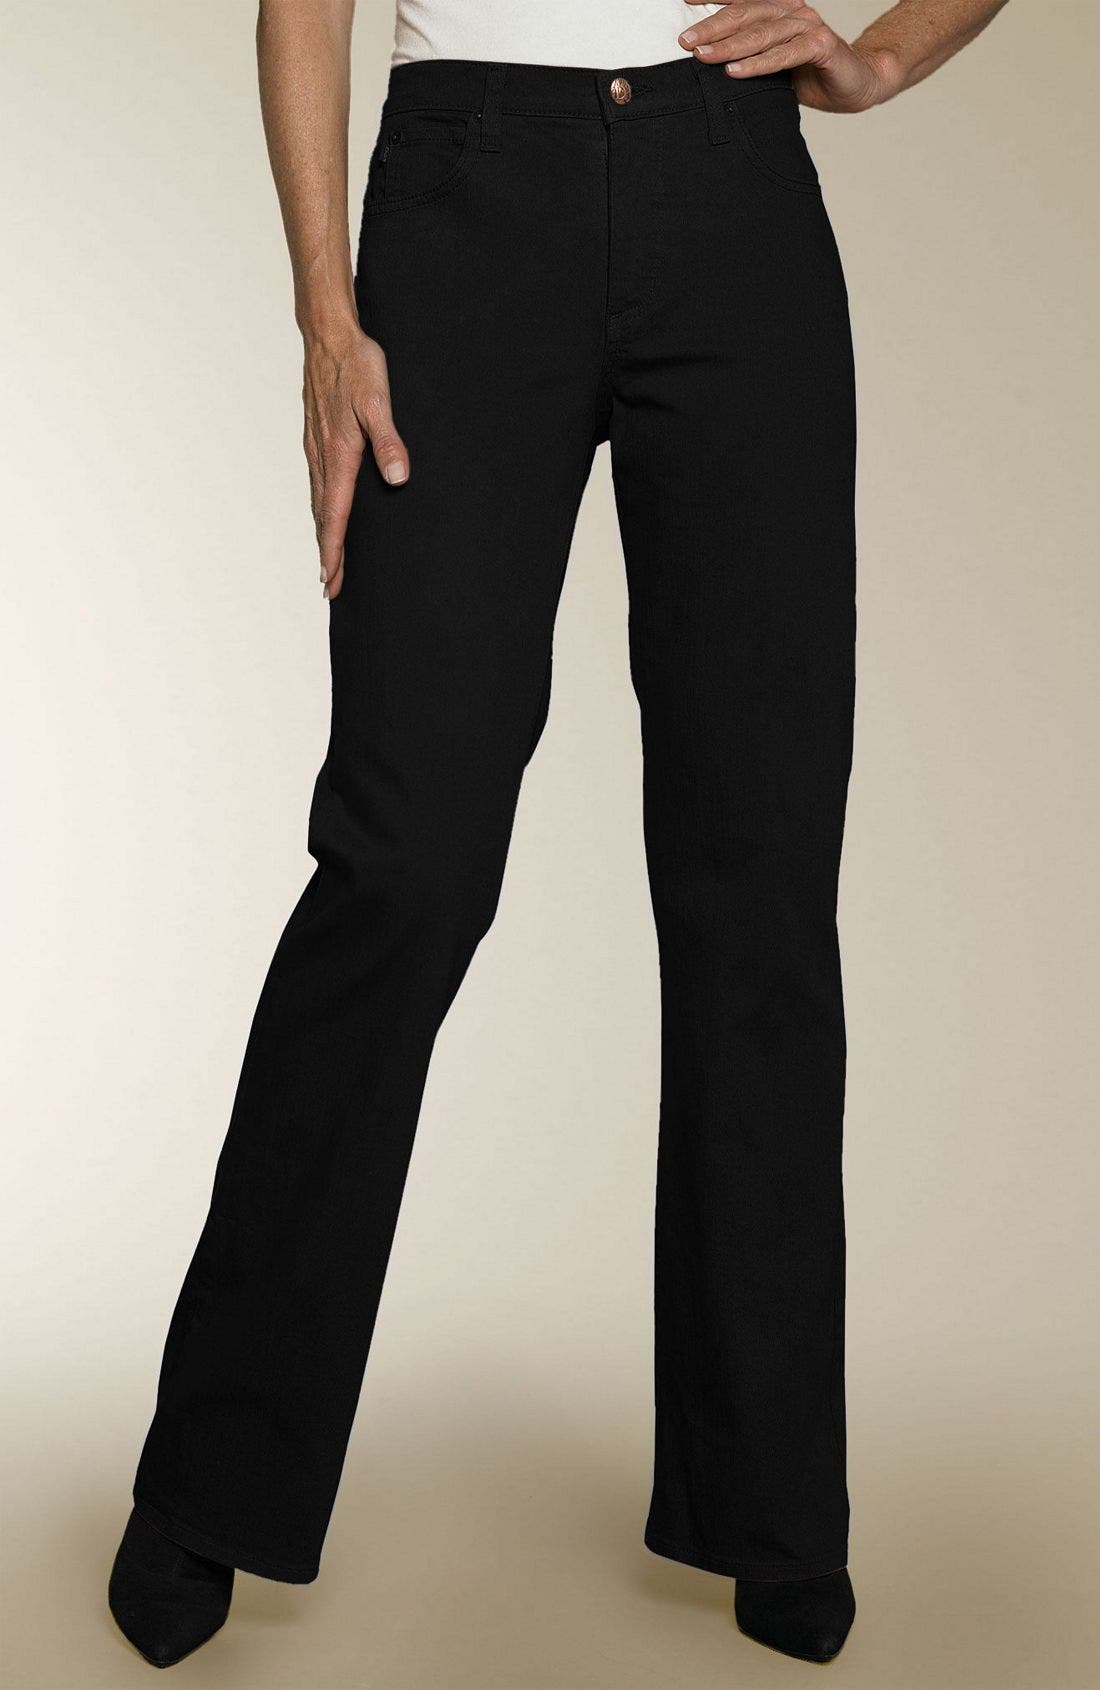 Main Image - NYDJ Bootcut Stretch Jeans (Petite)